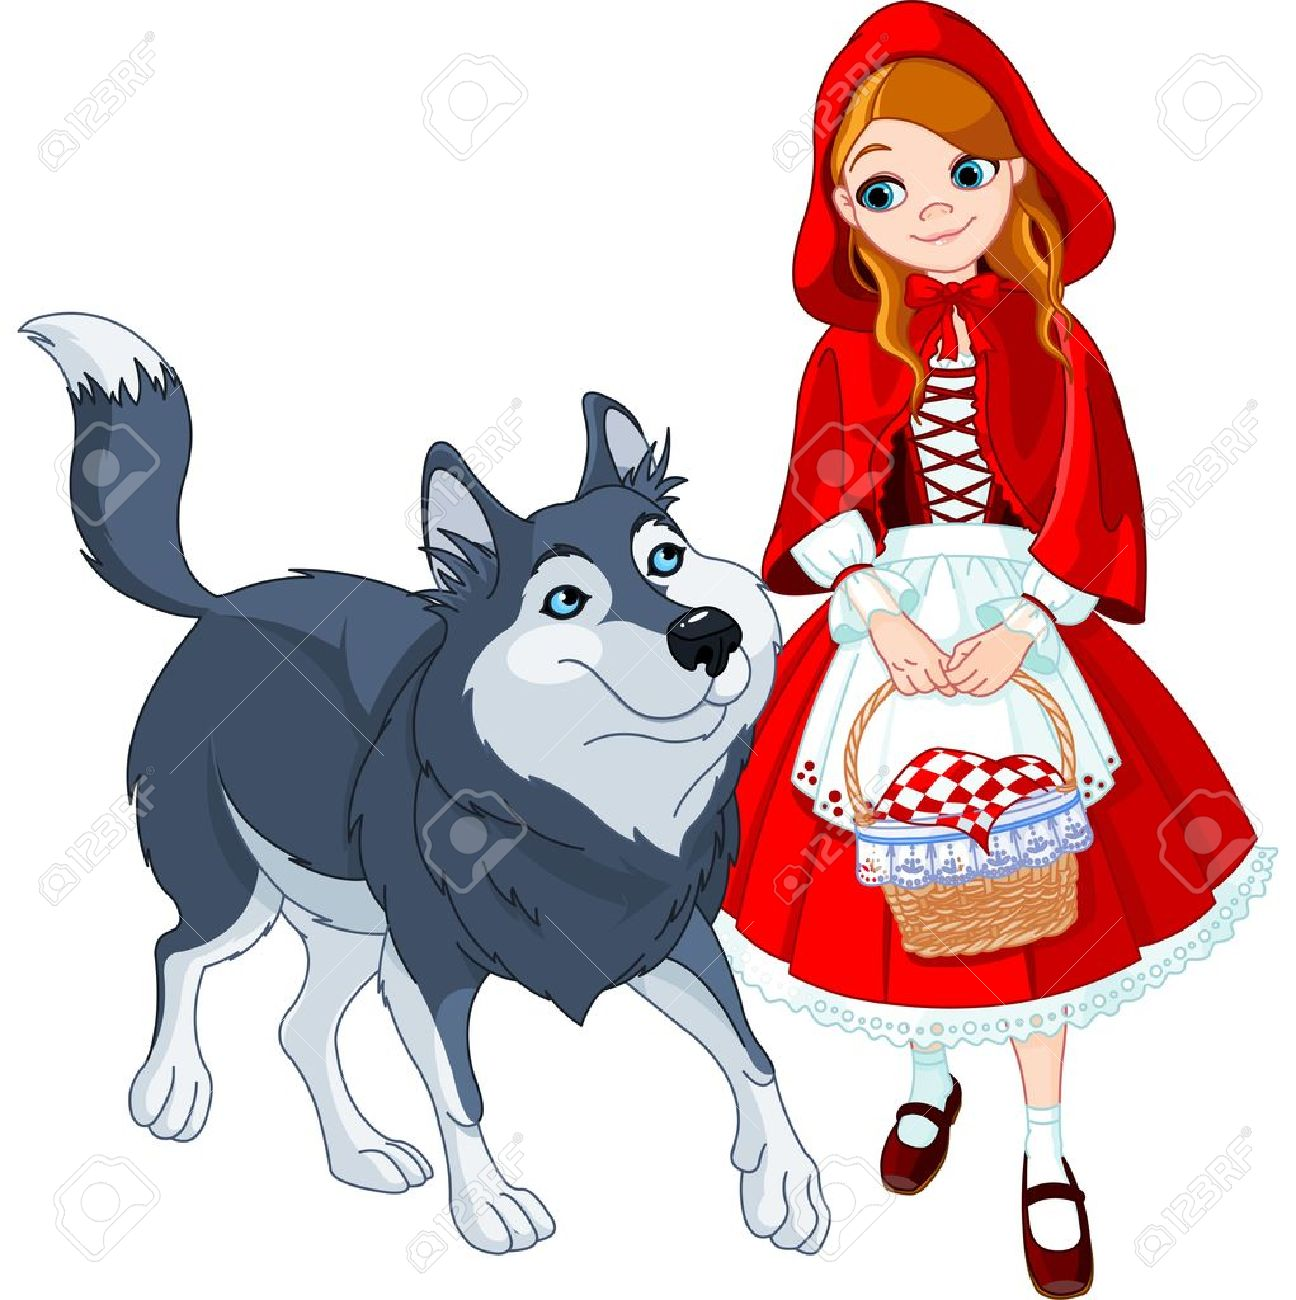 little red riding hood stock photos u0026 pictures royalty free